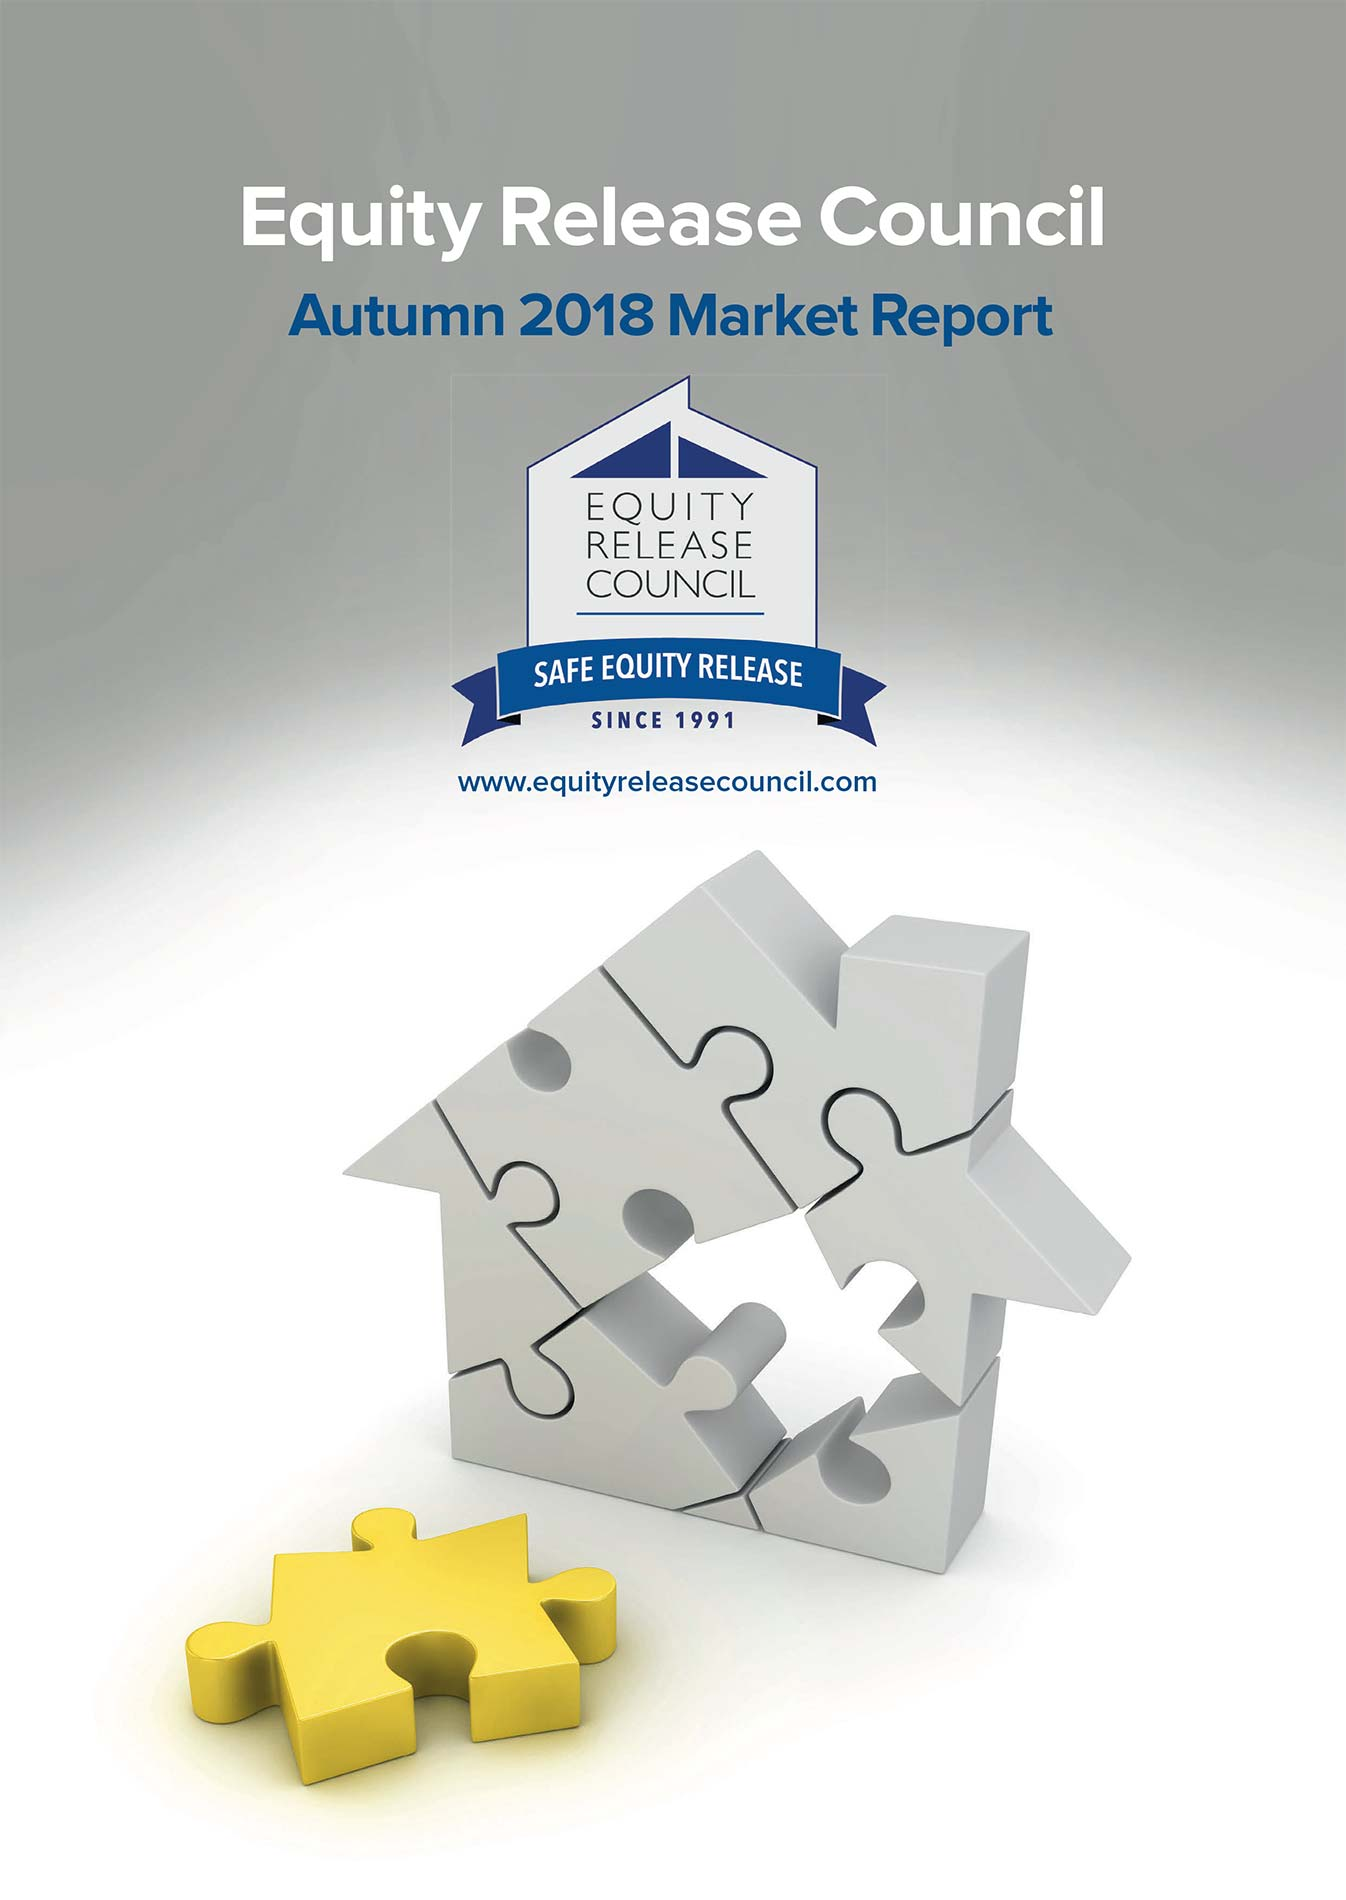 Equity Release Council Autumn 2018 Market Report